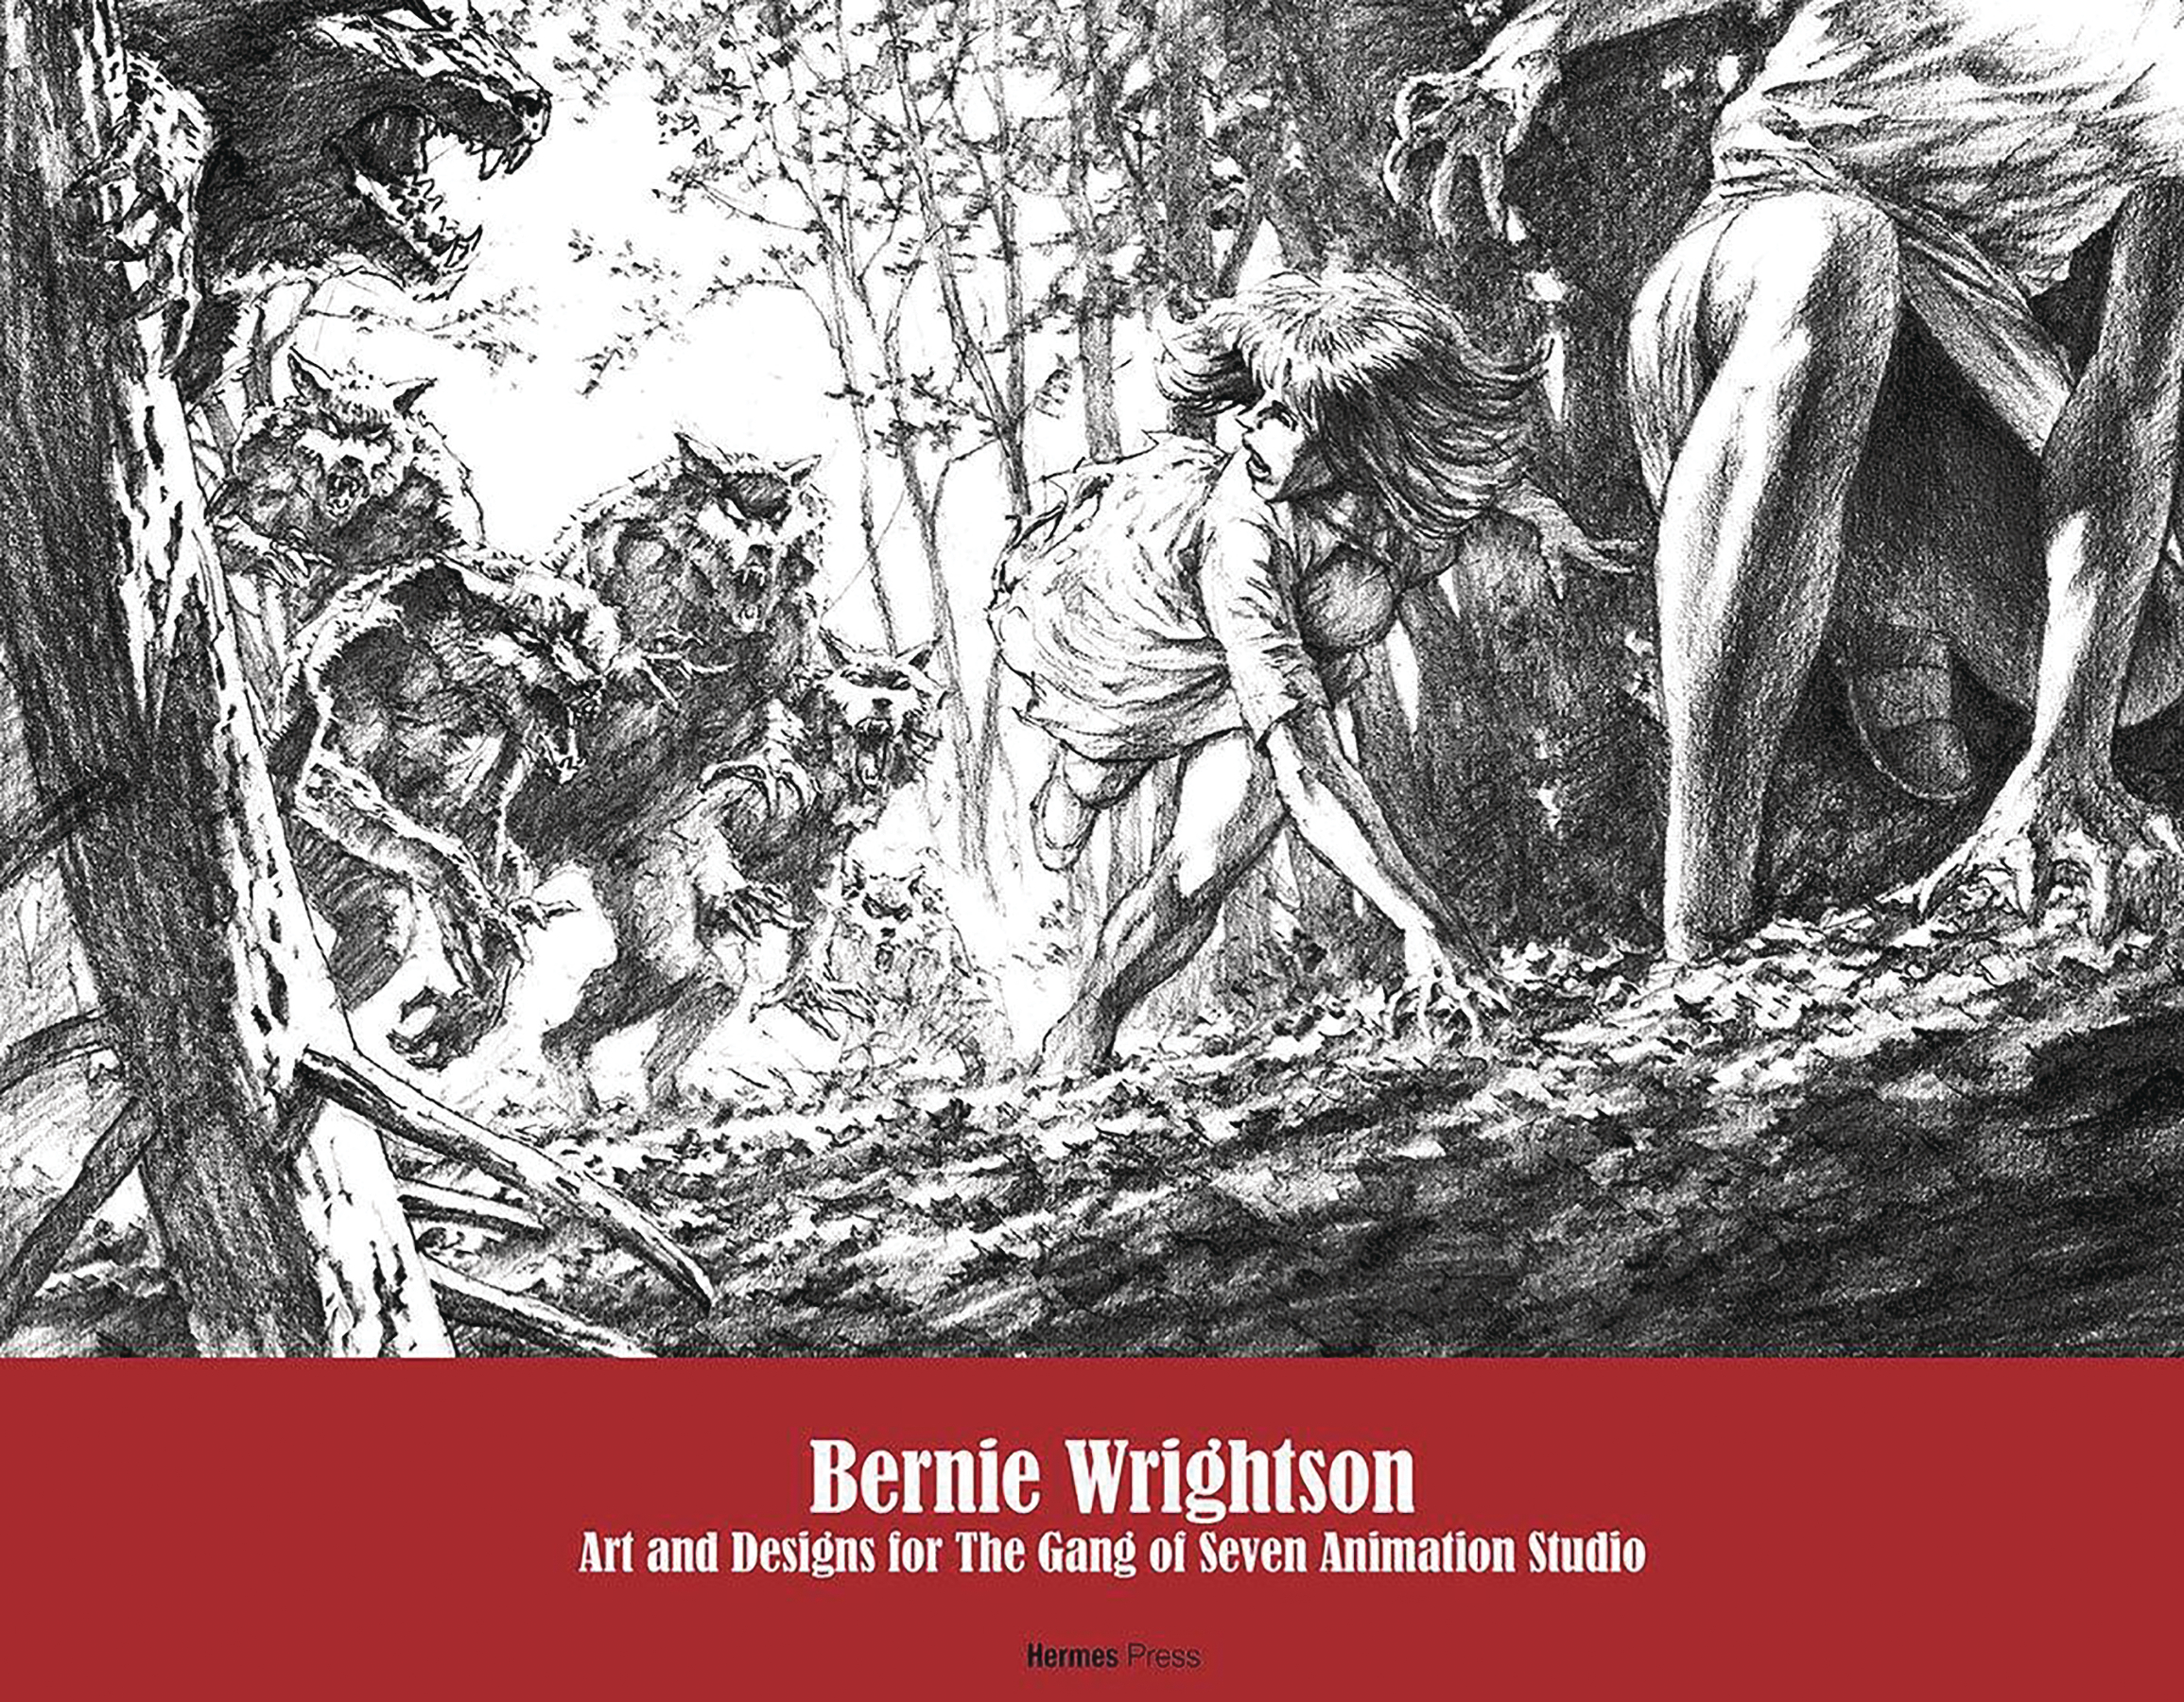 BERNIE WRIGHTSON ART & DESIGNS FOR GANG OF 7 ANIMATORS HC